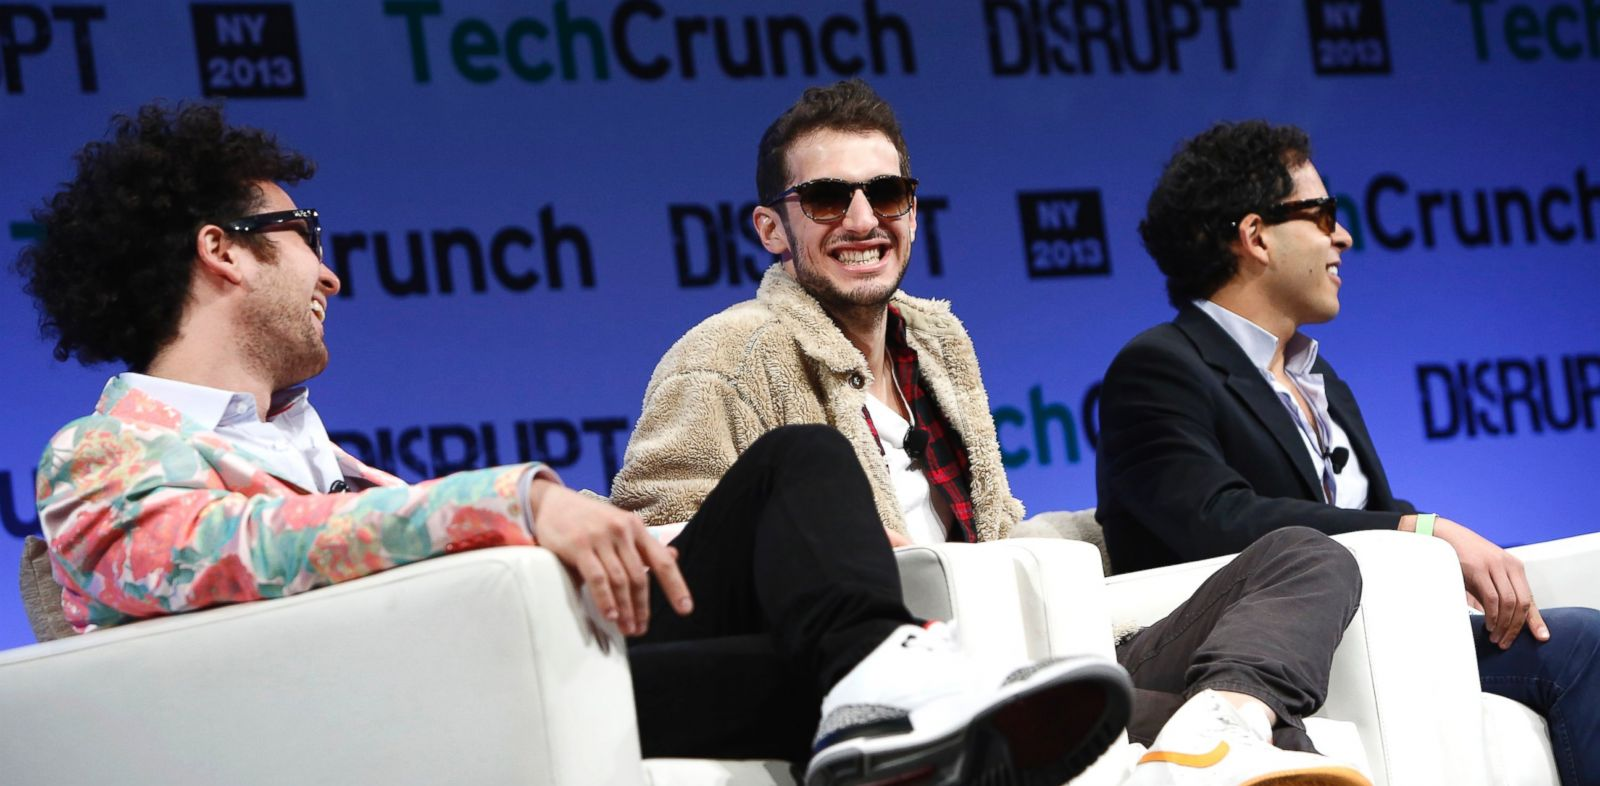 PHOTO: From left: Tom Lehman, Ilan Zechory and Mahbod Moghadam of Rap Genius speak onstage at TechCrunch Disrupt NY 2013 on May 1, 2013 in New York.